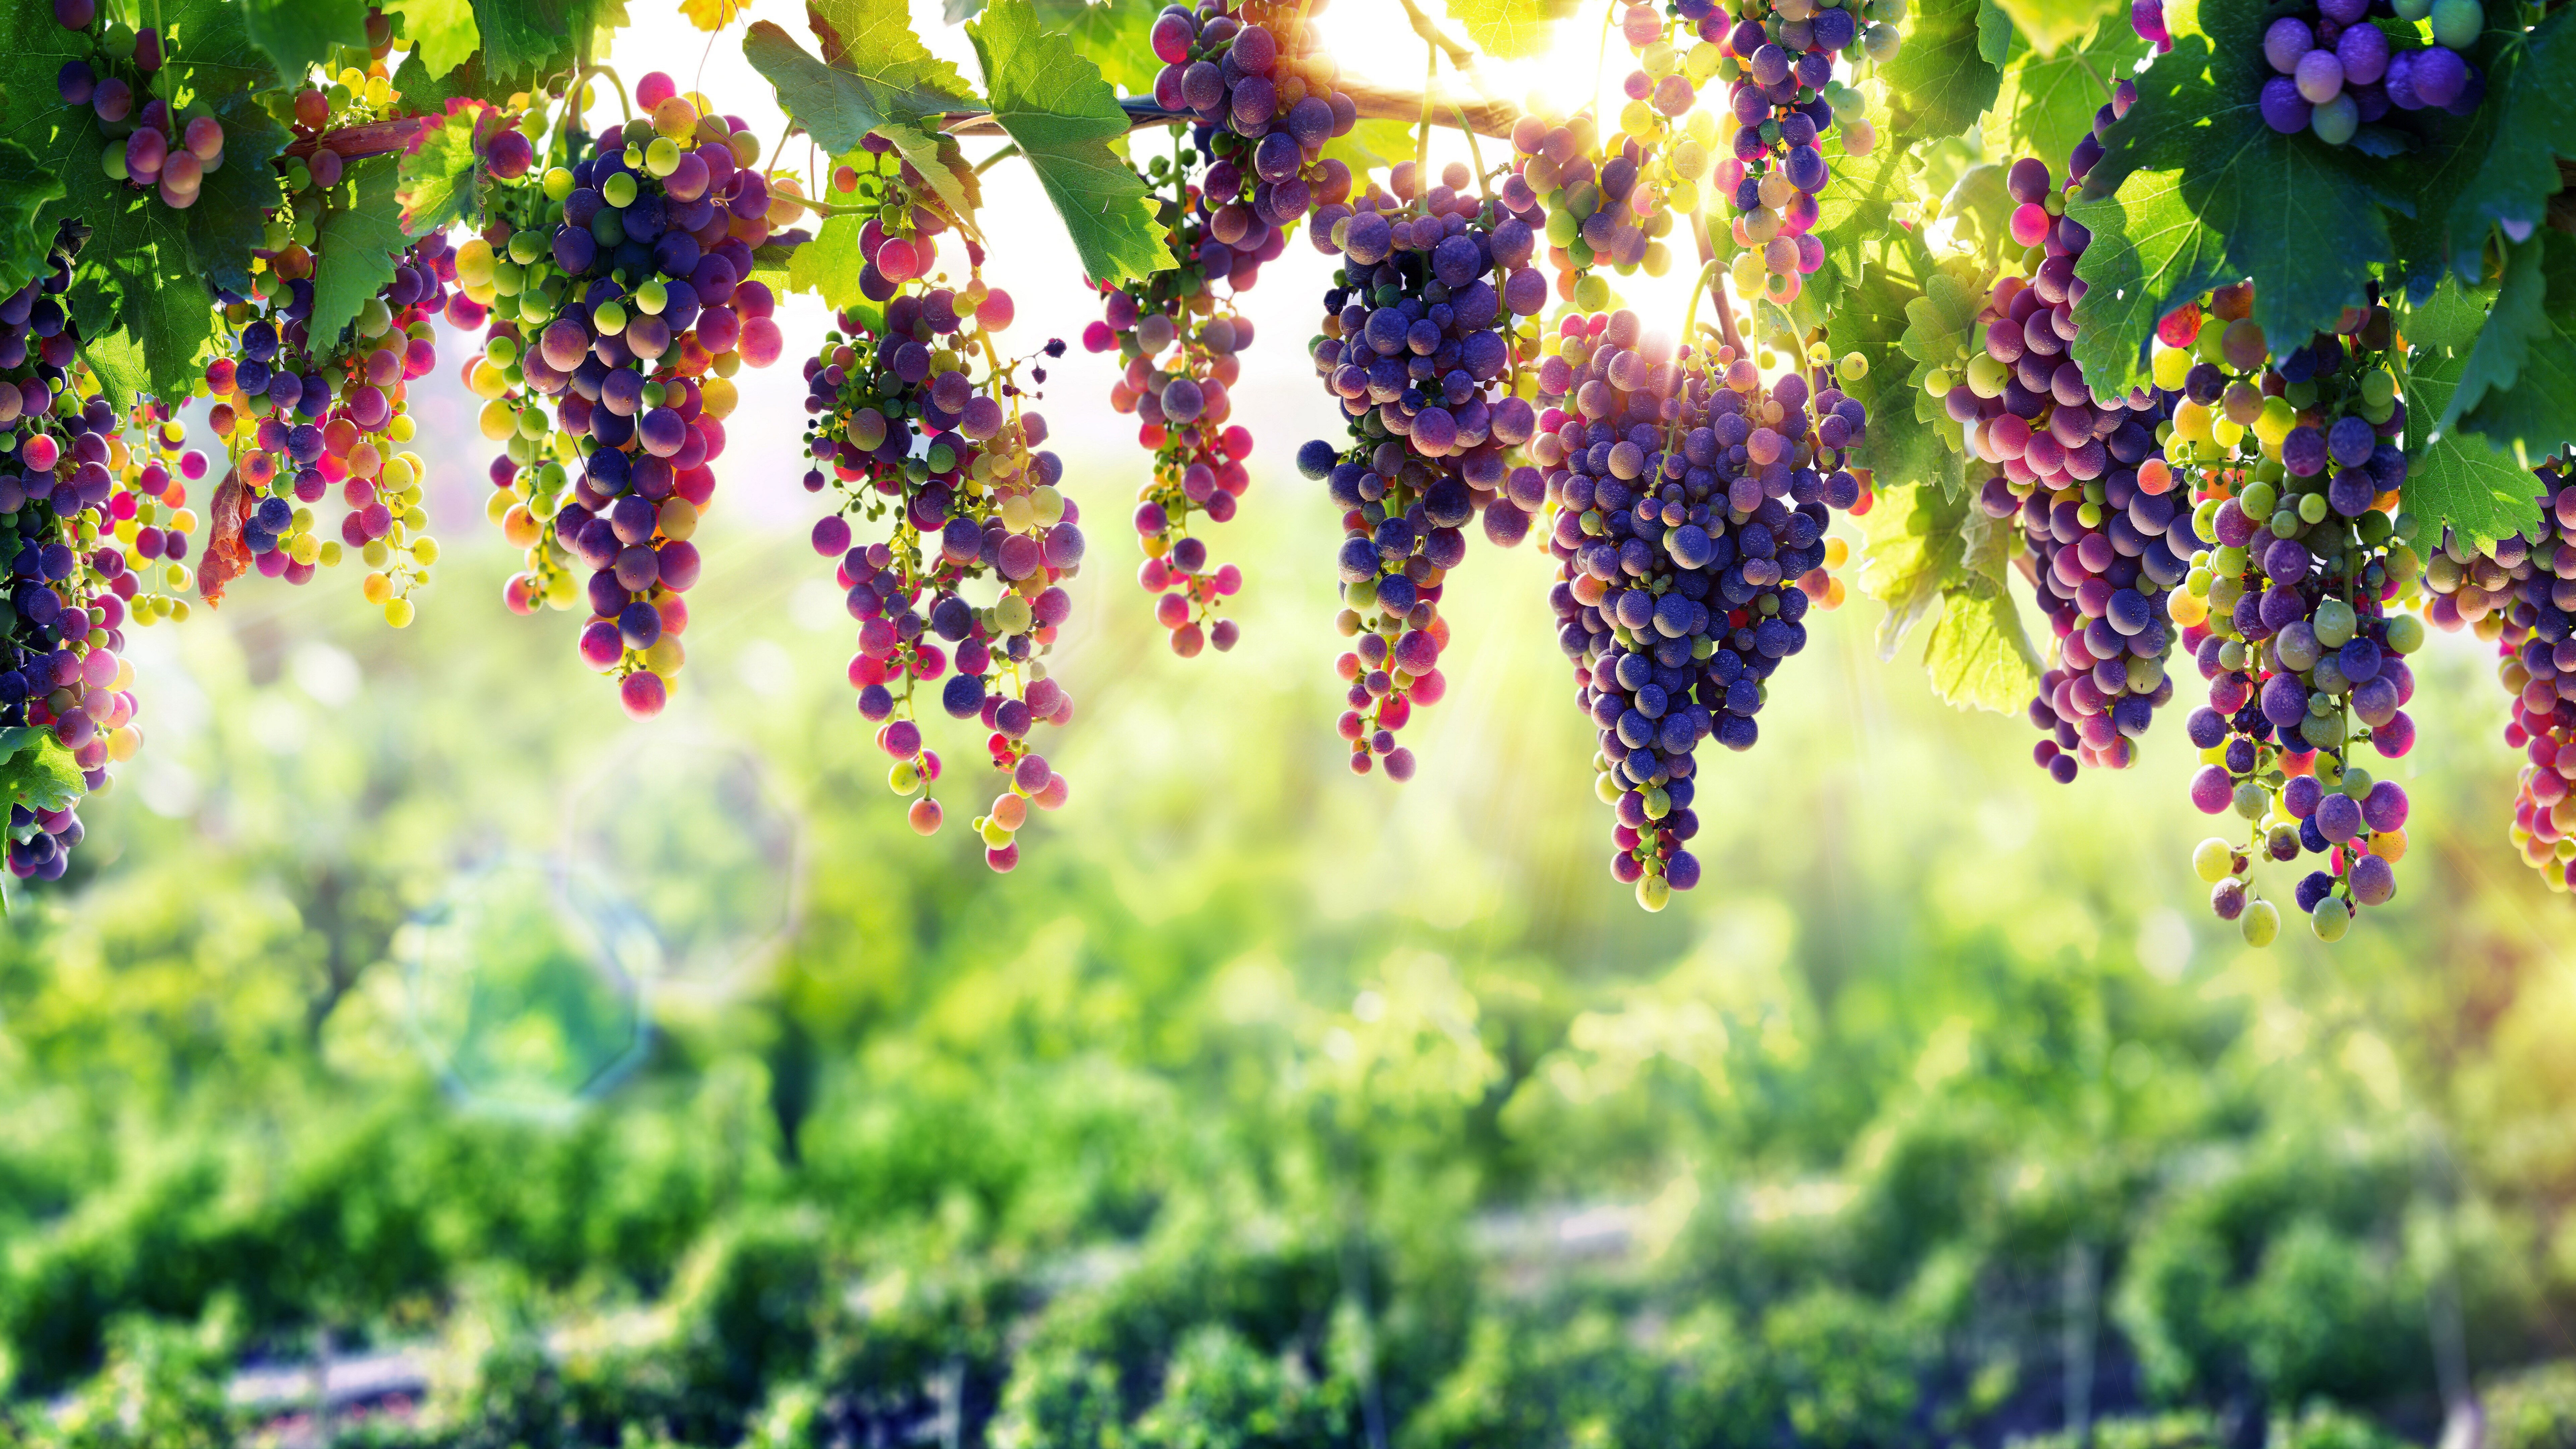 7680x4320 Grape 8k 8k Hd 4k Wallpapers Images Backgrounds